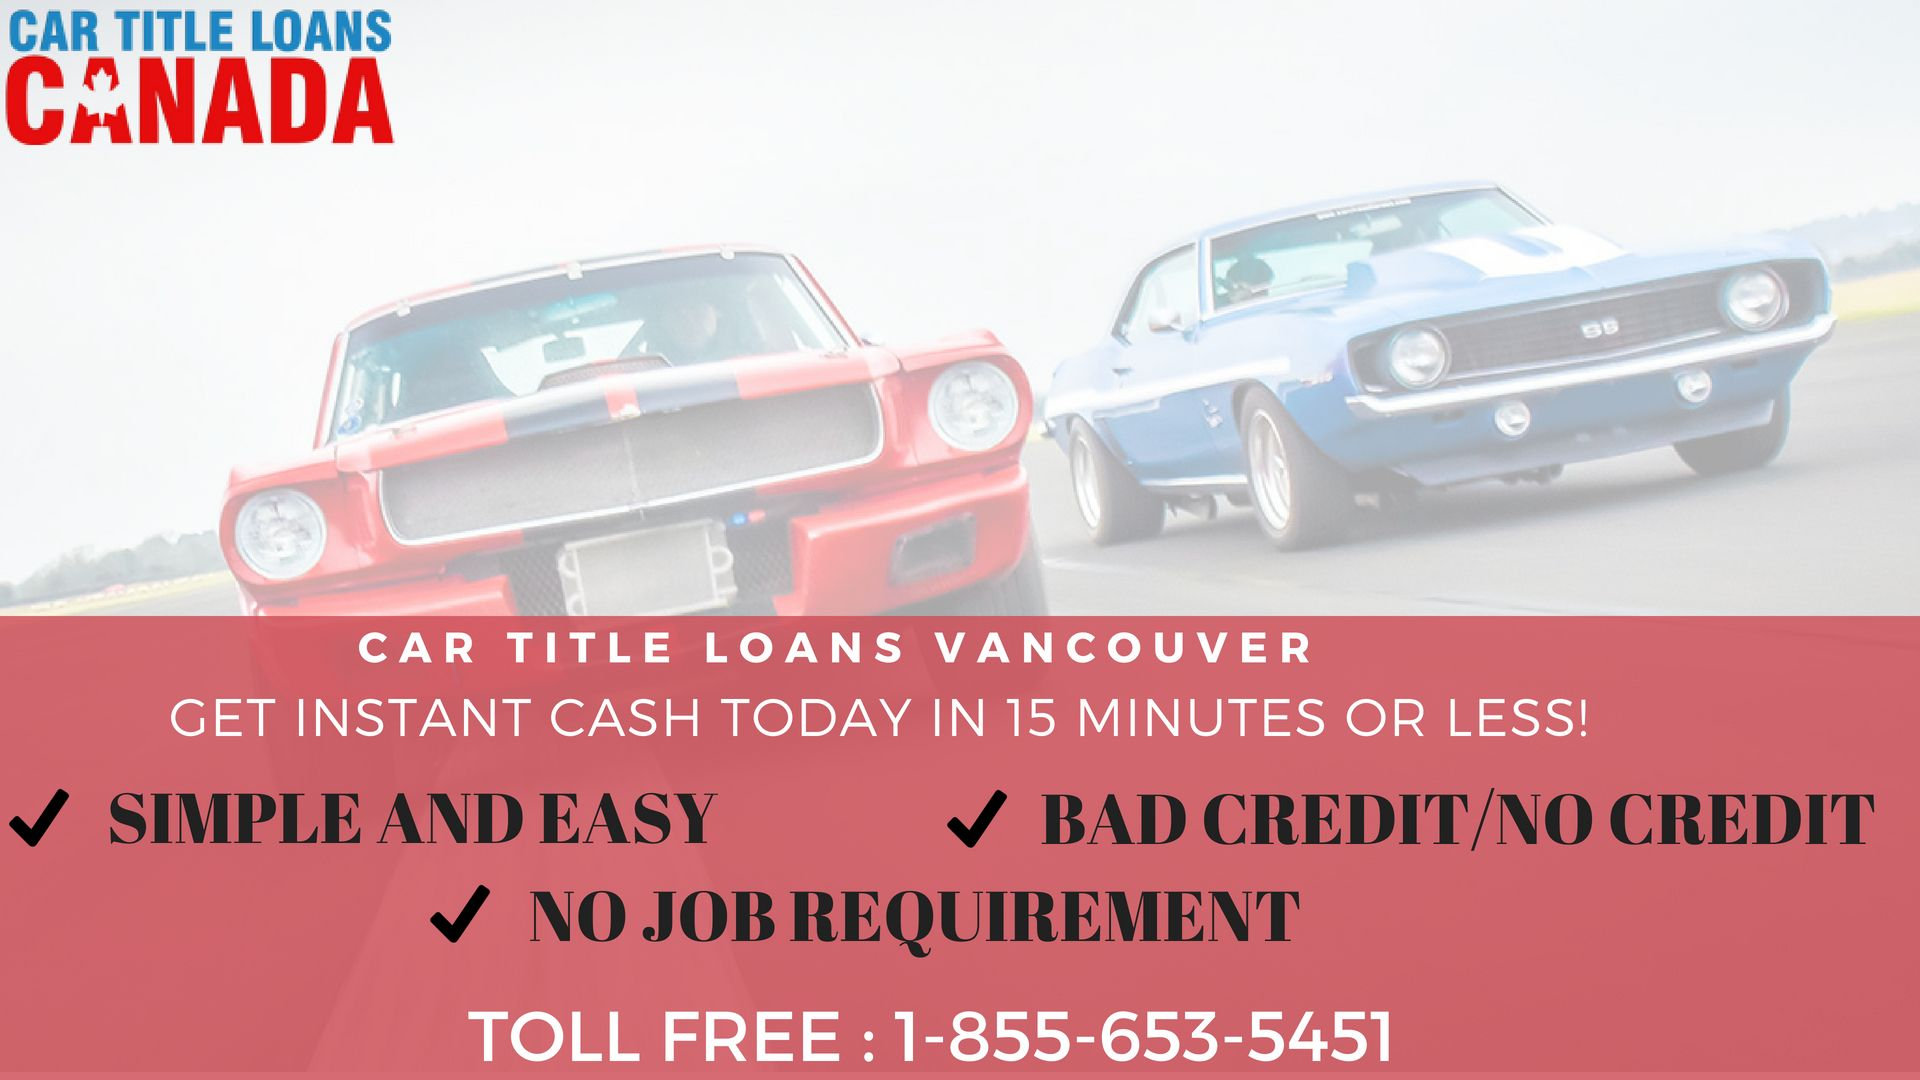 Car Title Loans Canada Provides Car Title Loans In Vancouver With